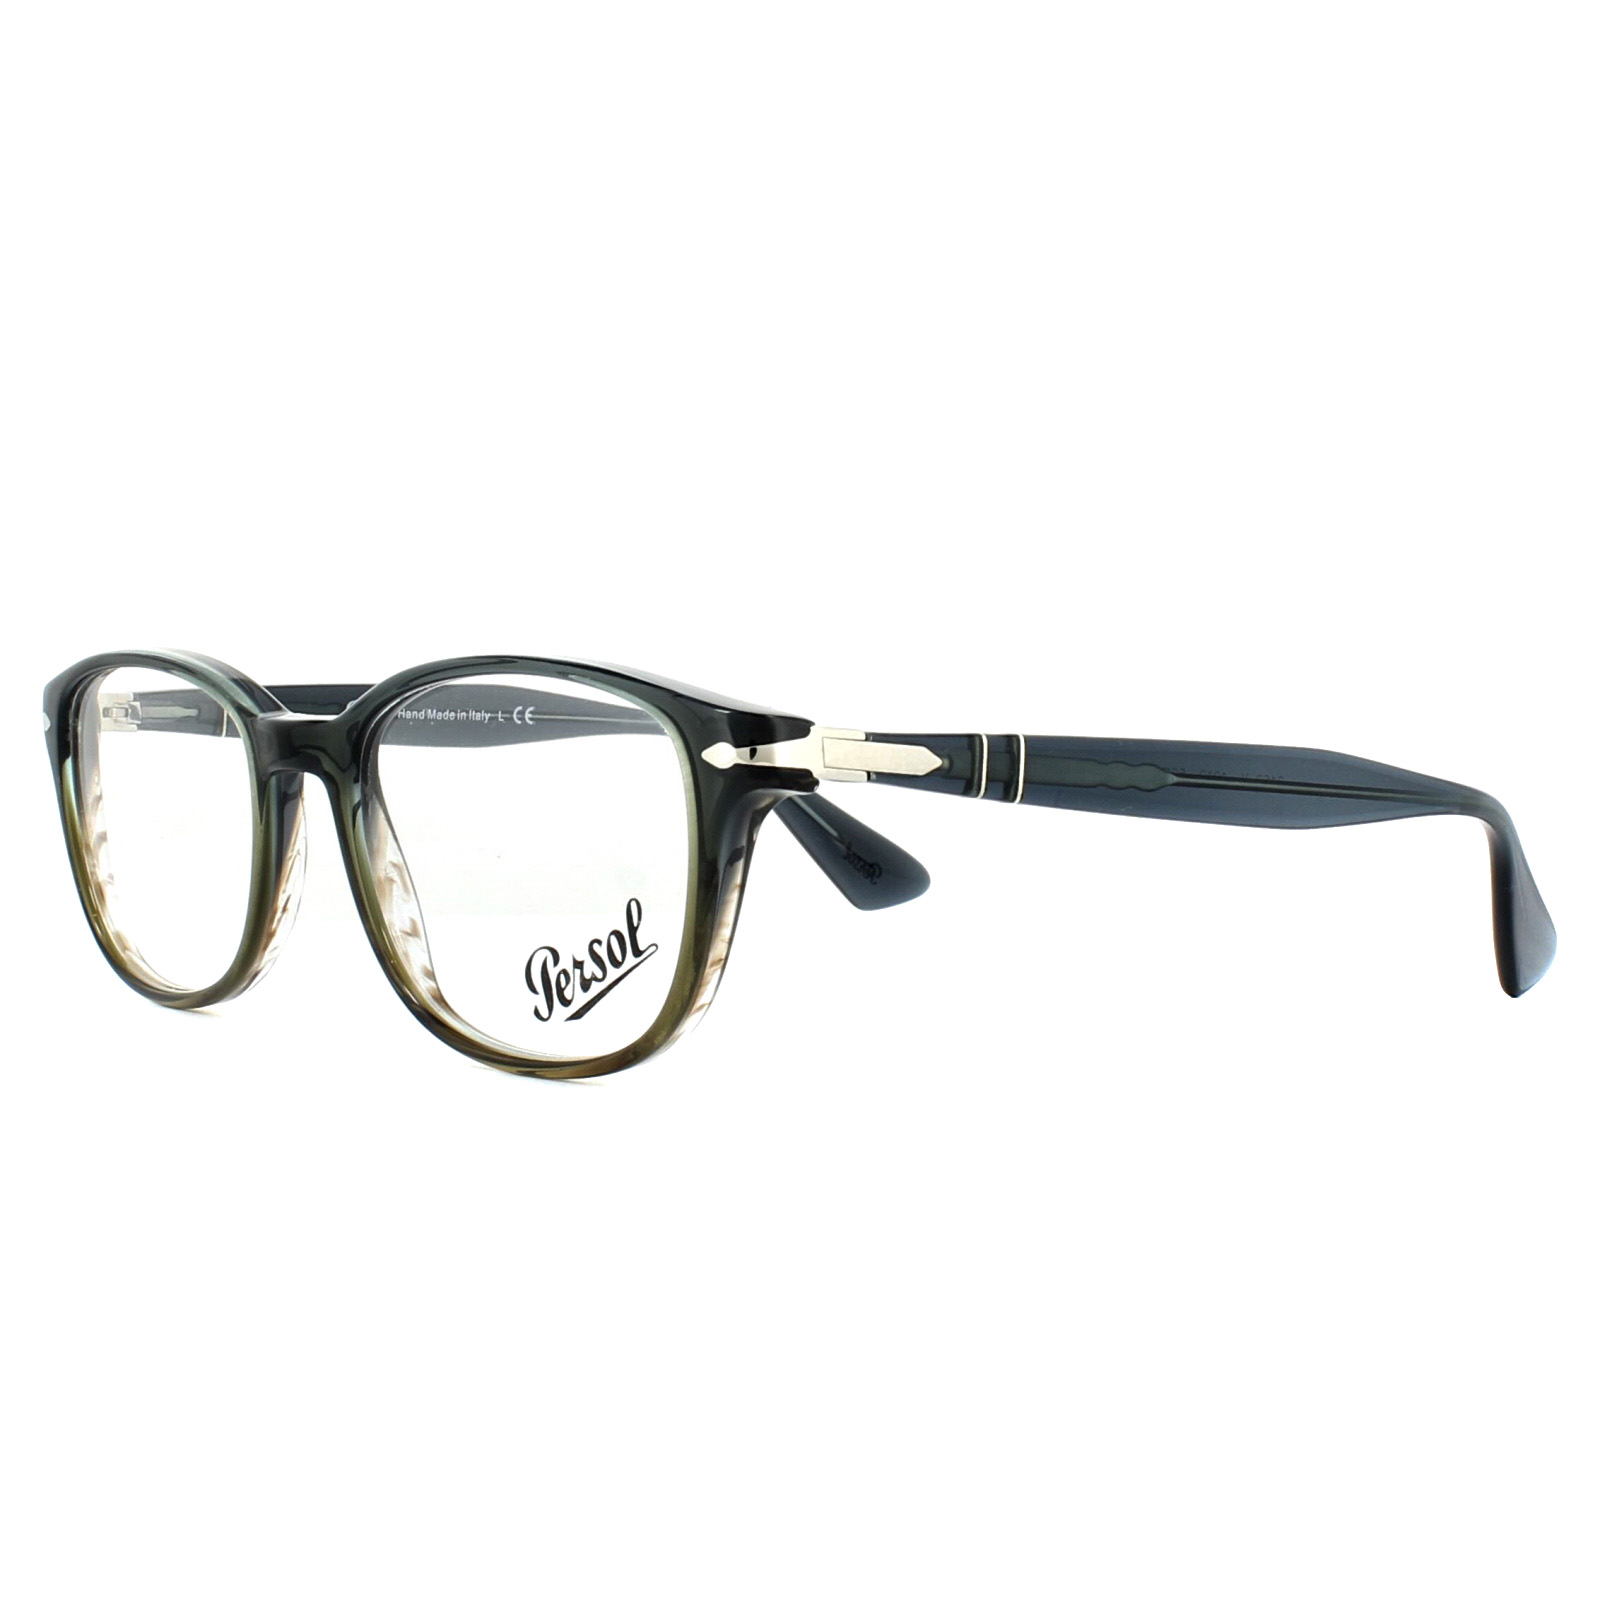 Persol Glasses Frames PO3163V 1012 Gradient Grey Striped Green 52mm ...